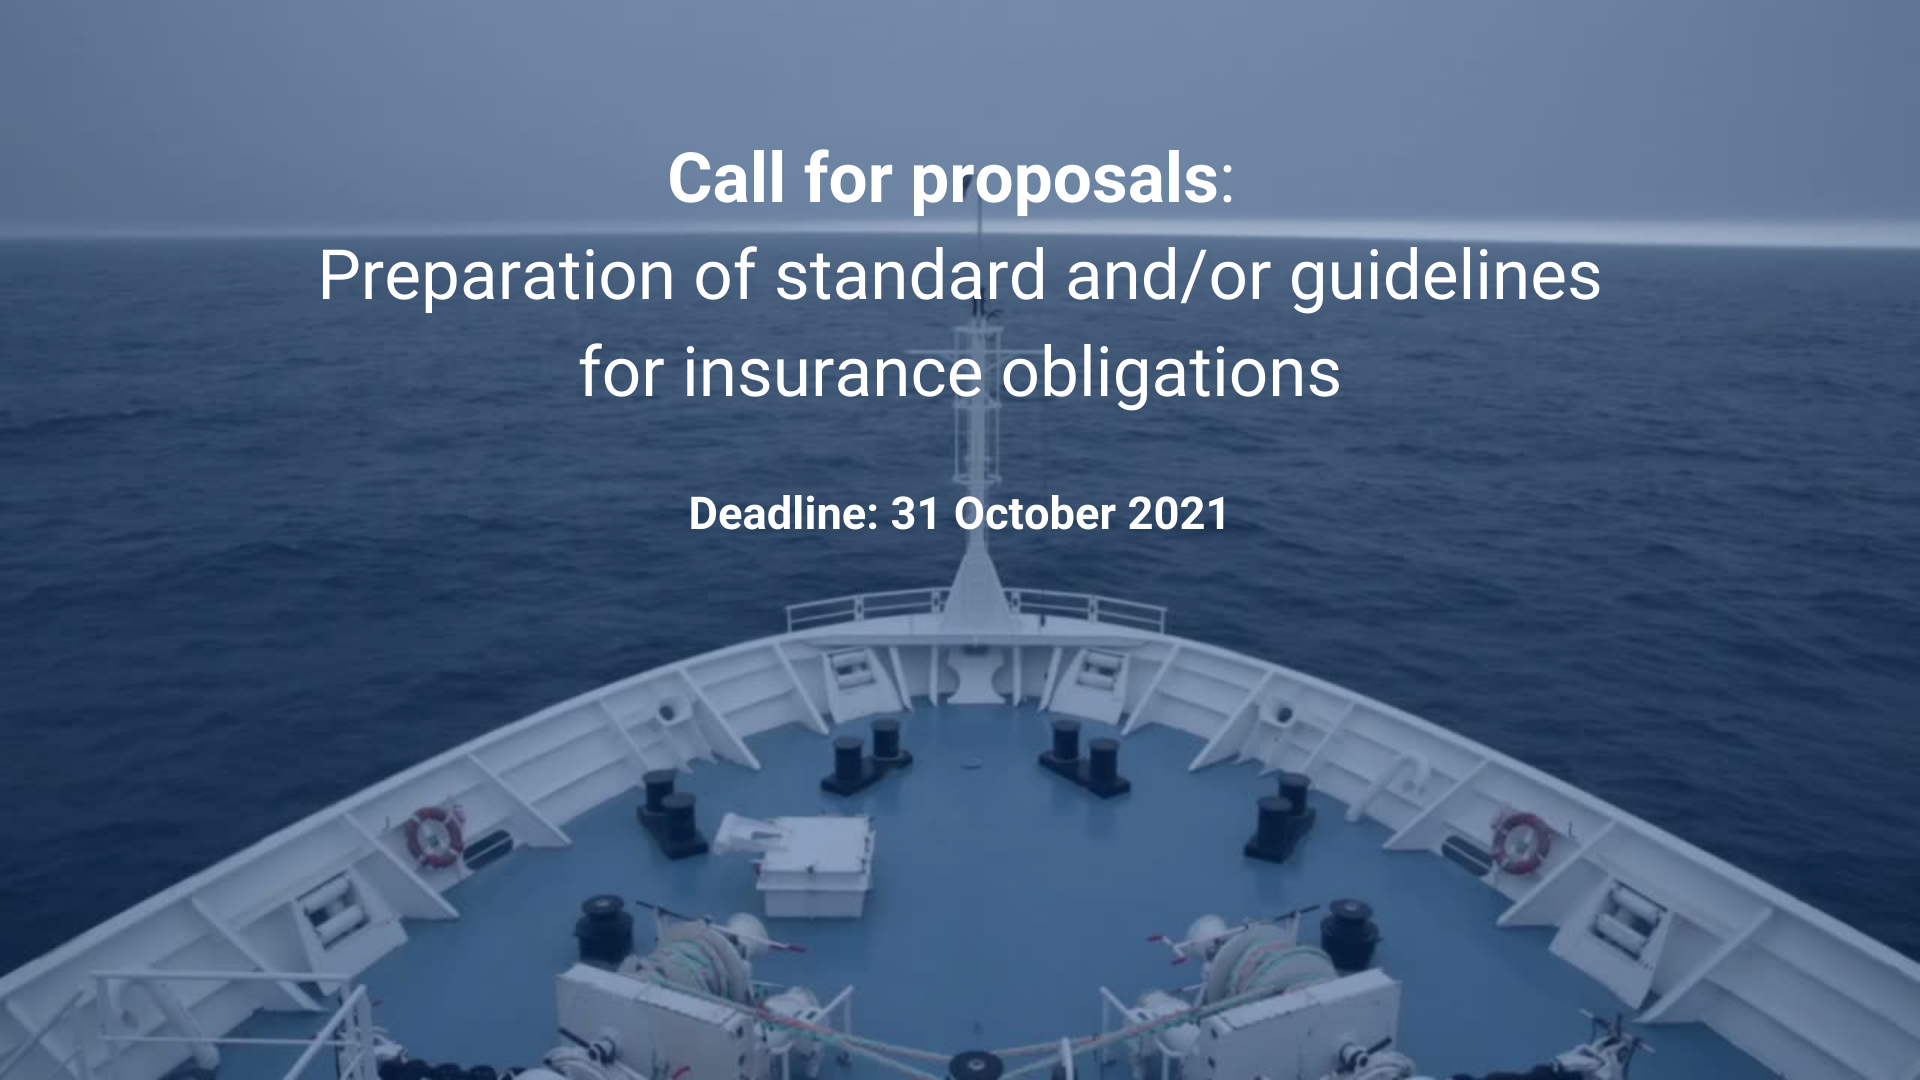 Call for proposals 2